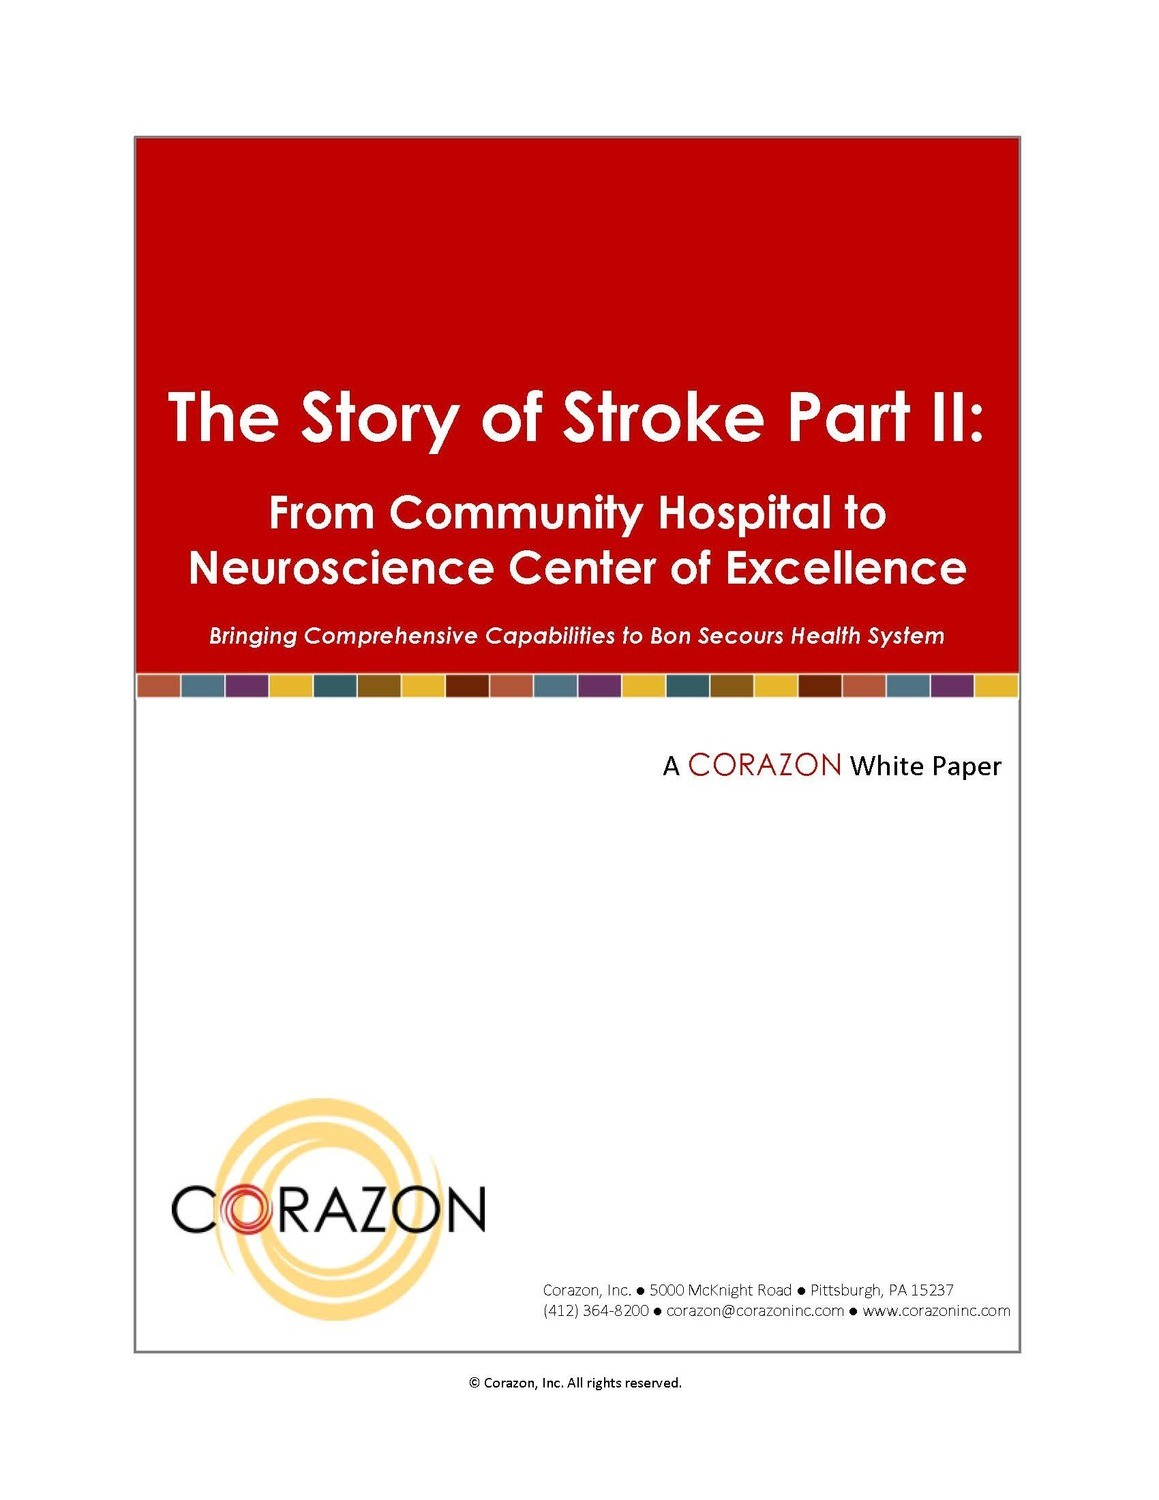 The Story of Stroke Part II: From Community Hospital to Neuroscience Center of Excellence